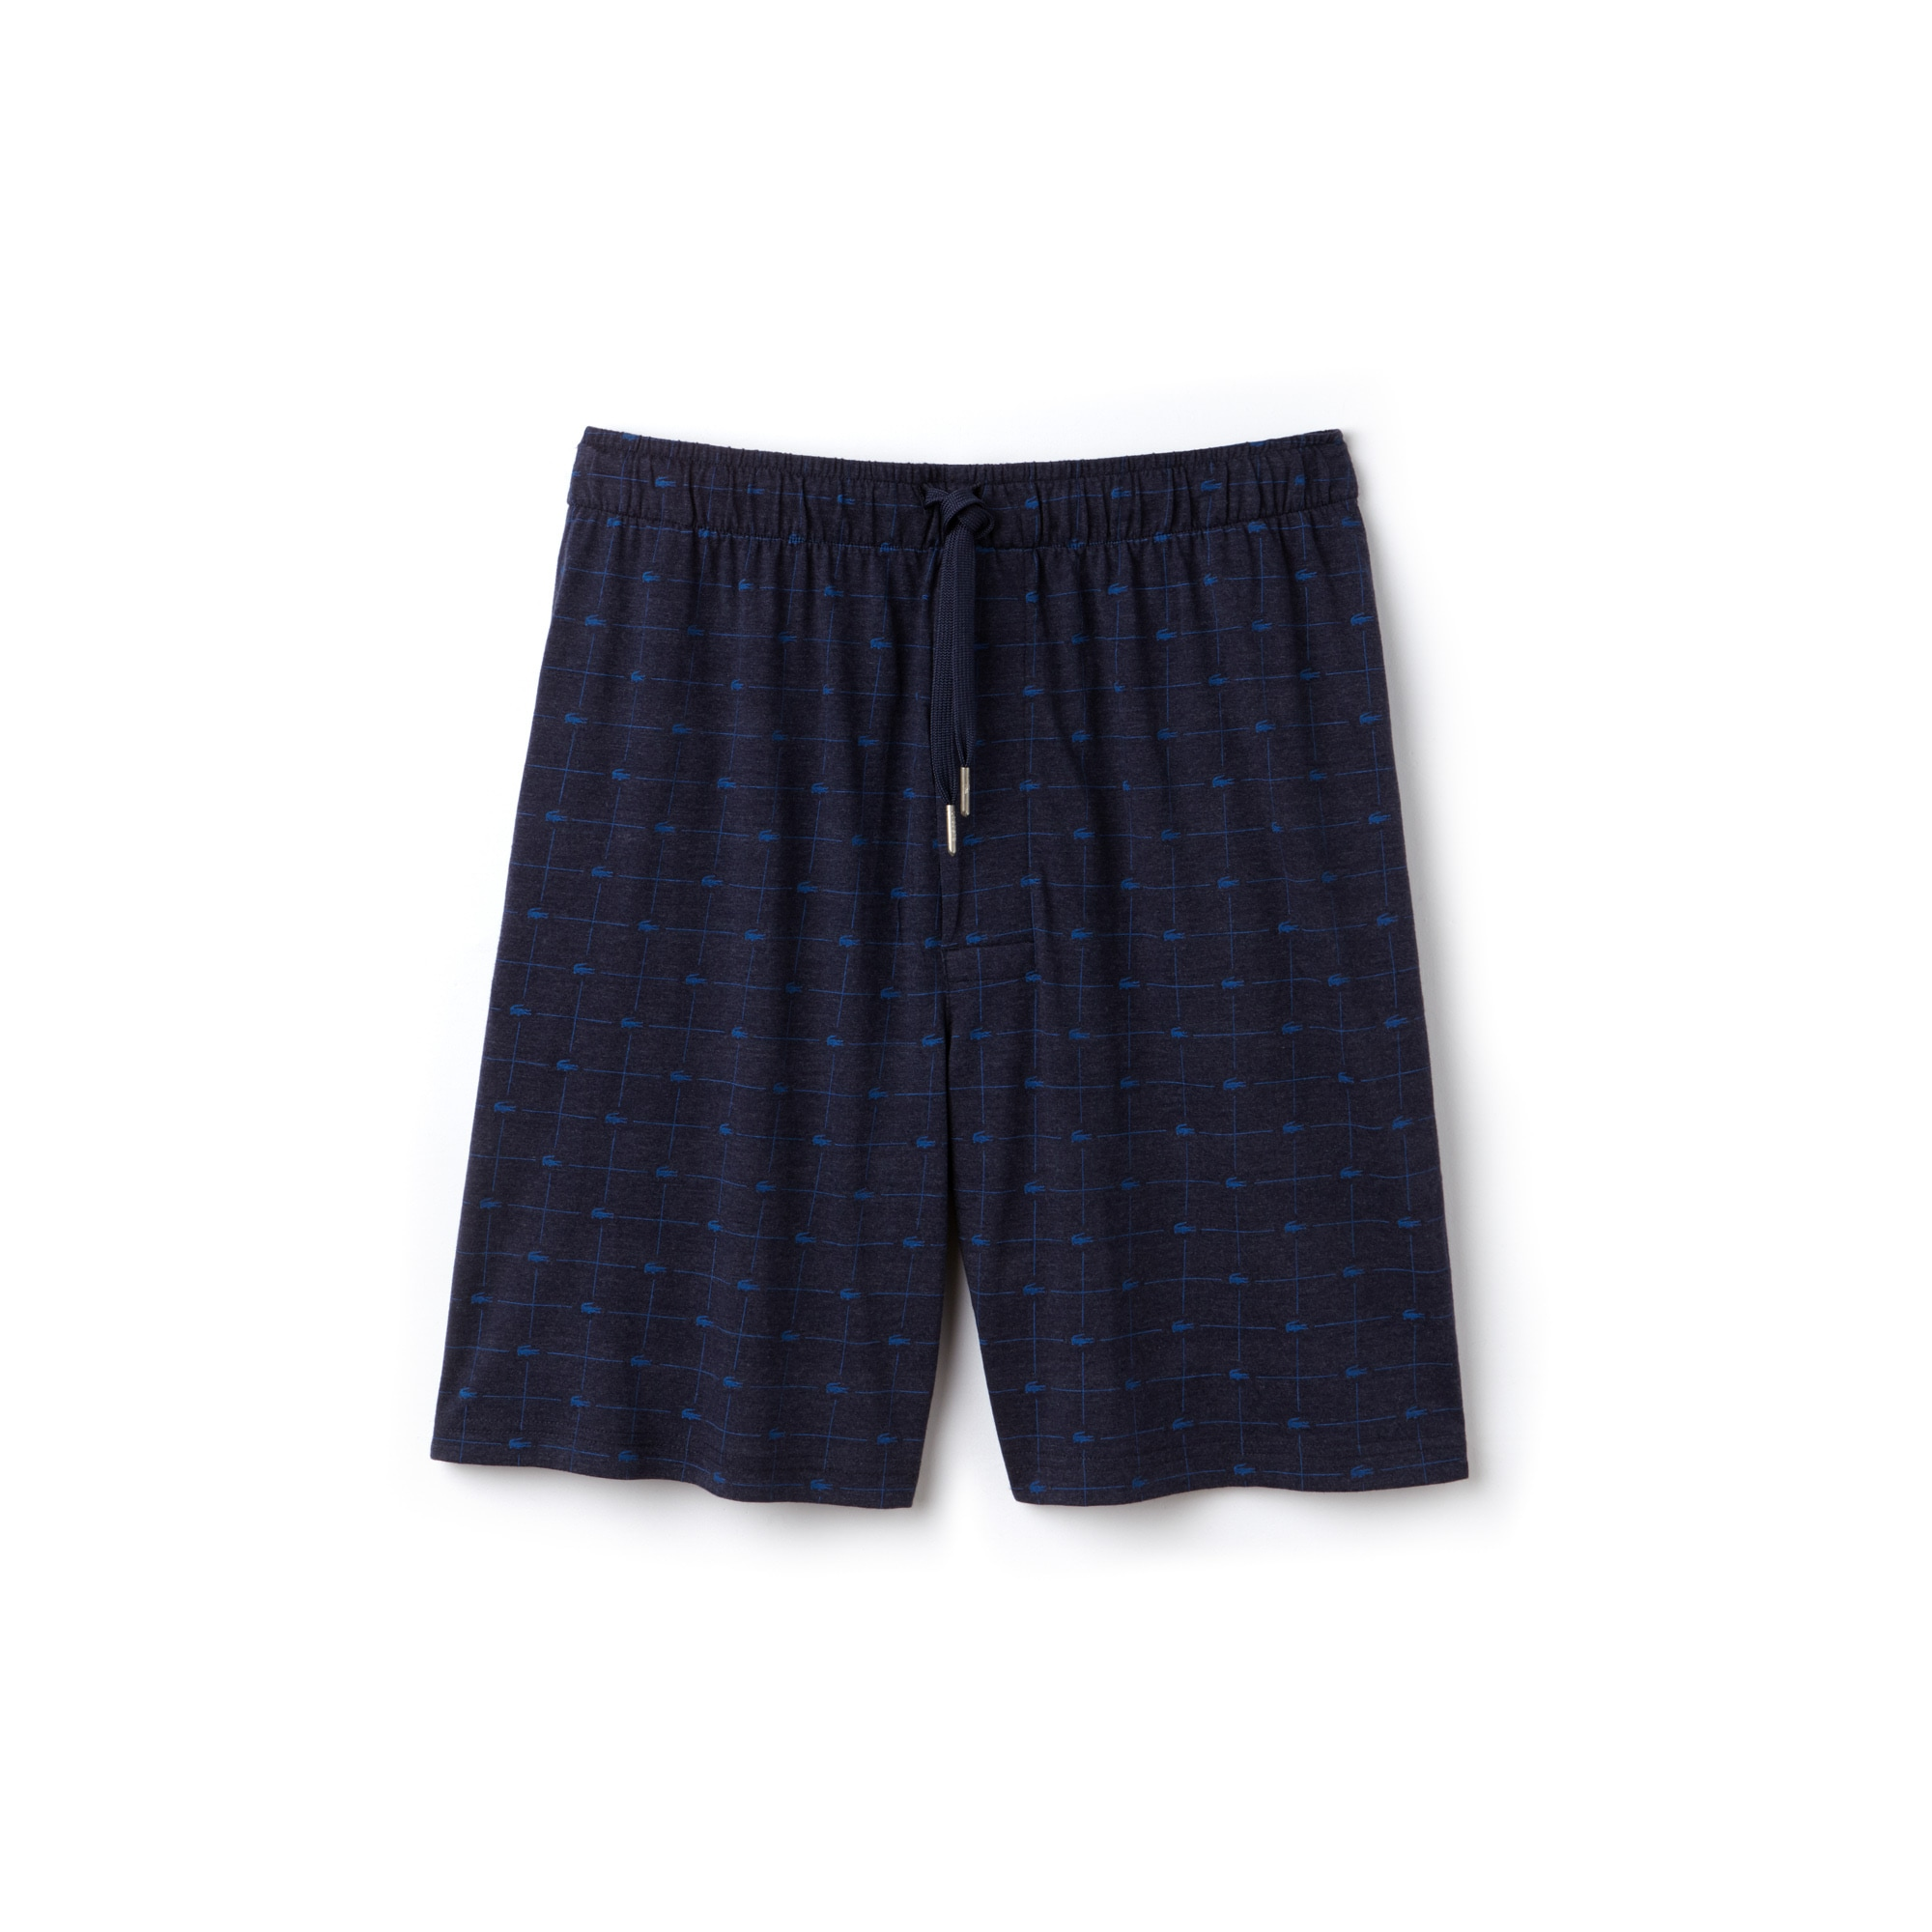 Men's Signature Print Knit Short